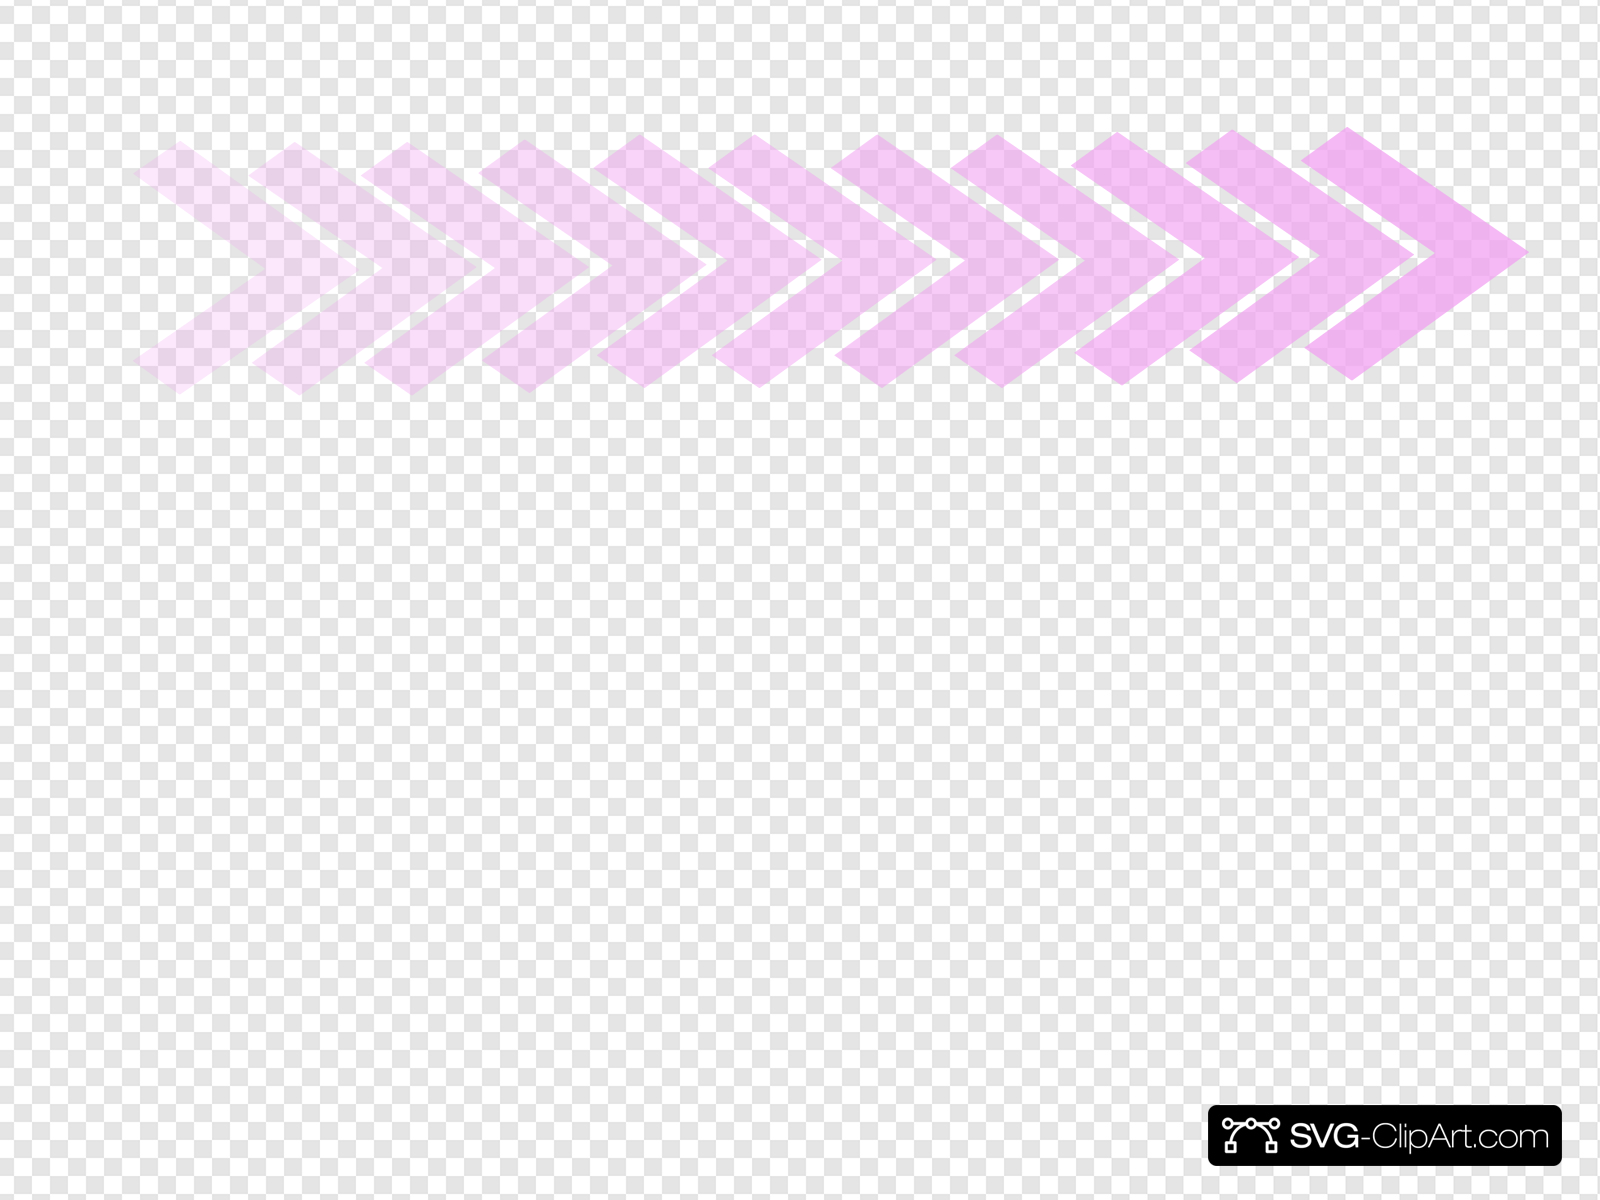 Pink Ombre Chevron Arrow Clip art, Icon and SVG.